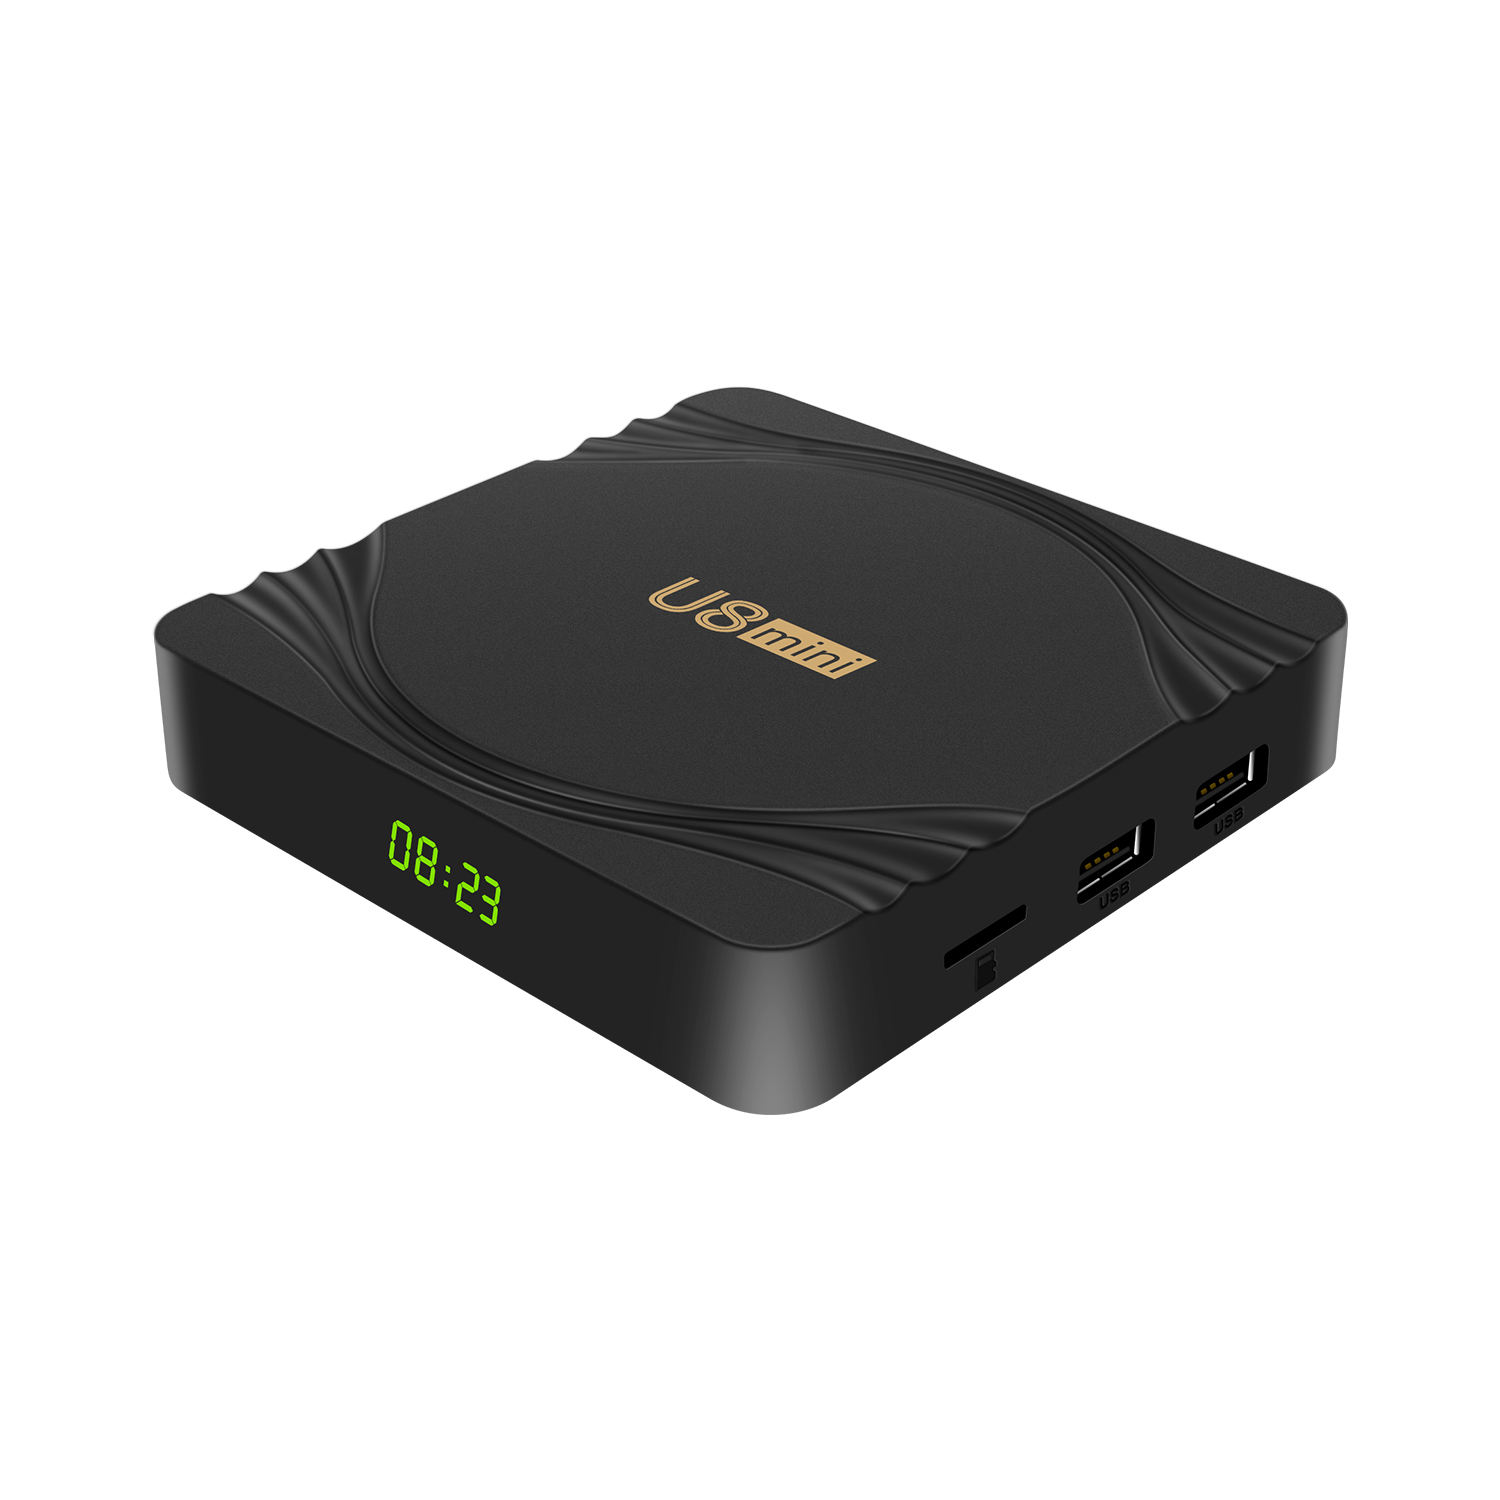 Smart tv box android 9.0 2GB 16GB 2.4g/5ghz dual wifi BT 4.0 SET TOP SCATOLA di S905W Android Tv BOX